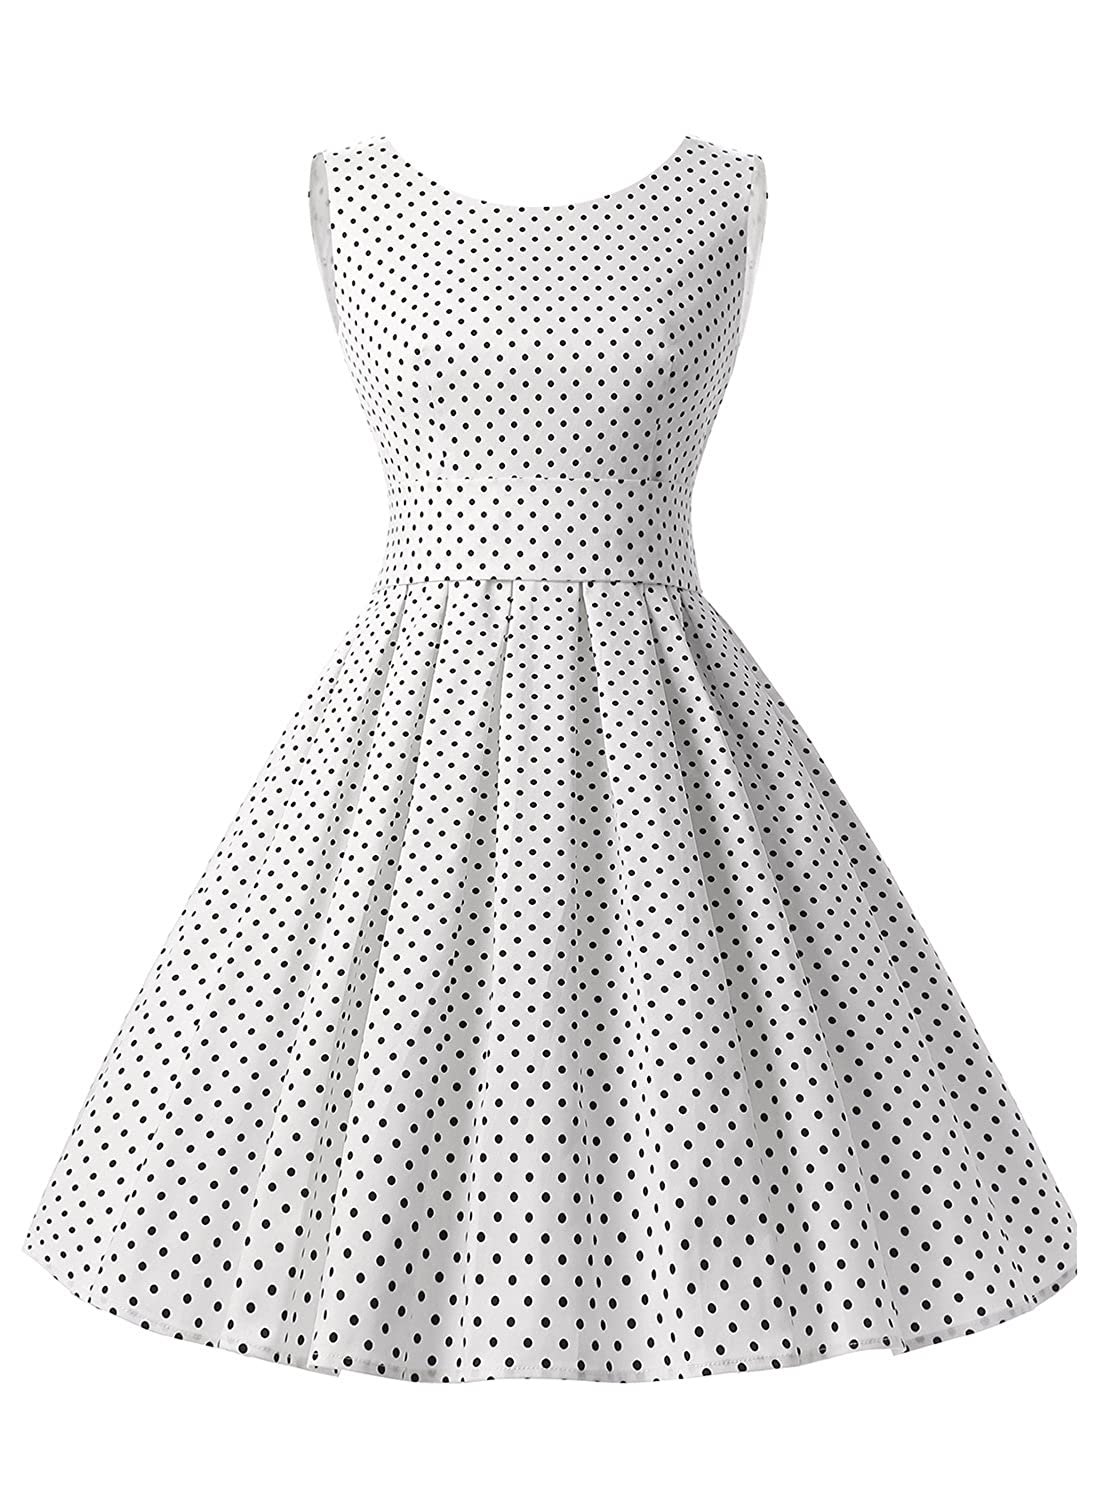 Vintage Inspired Clothing Stores Dressystar Vintage 1950s Audrey Hepburn Style Rockabilly Swing Party Prom Dress $24.69 AT vintagedancer.com